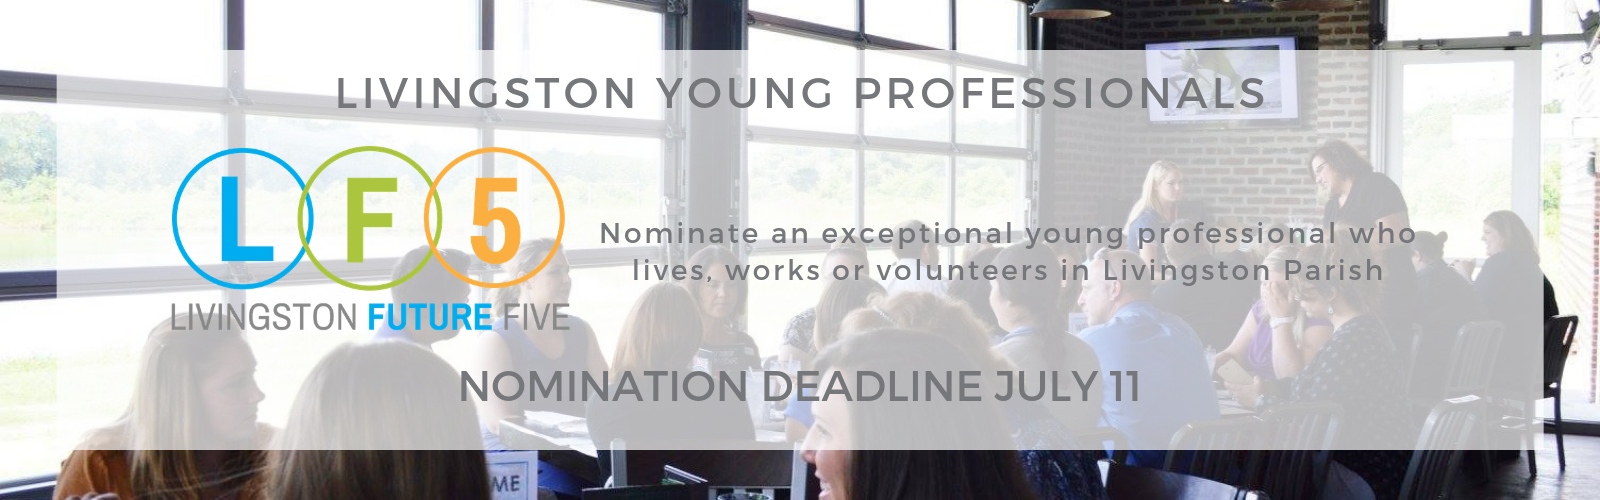 Livingston Future 5 Nominations due July 11